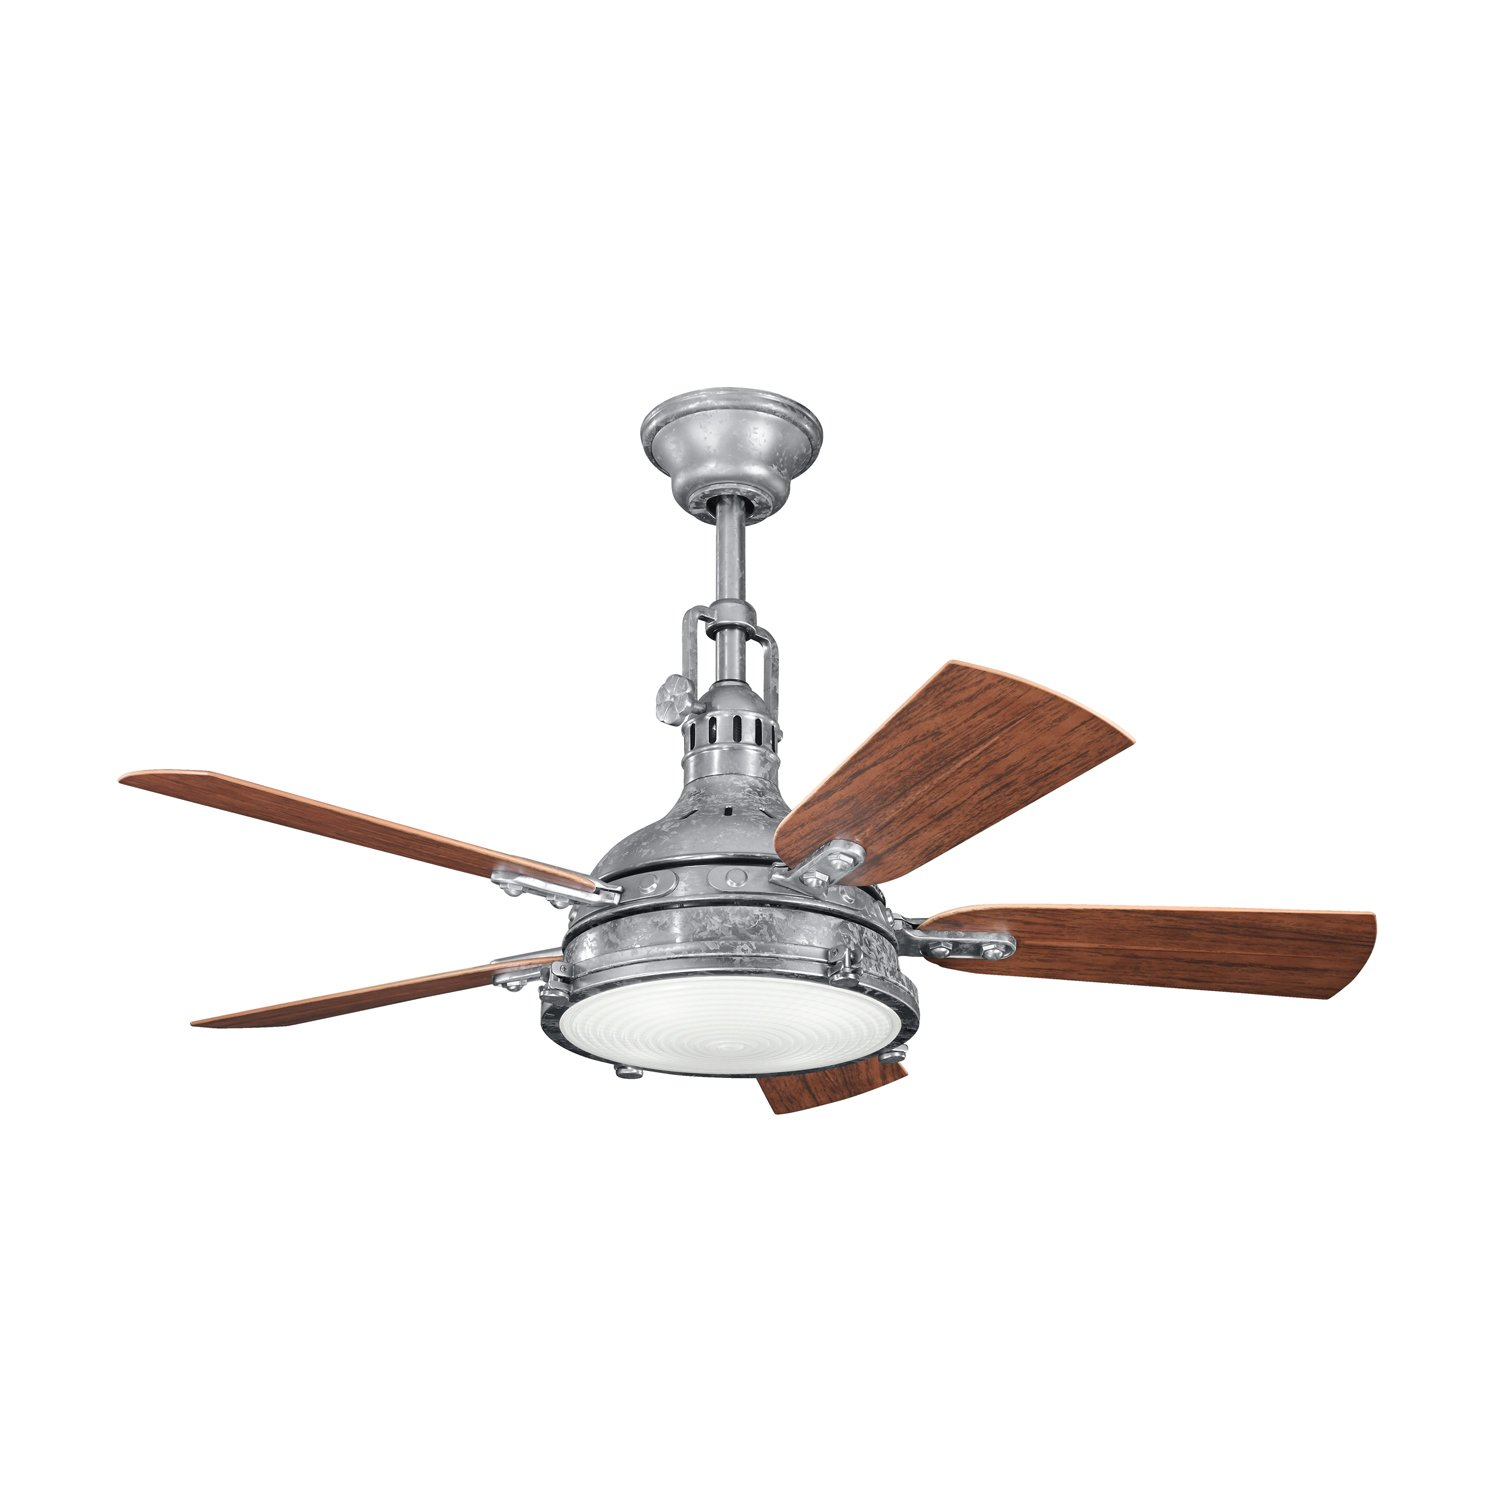 Kichler GST 44 Ceiling Fan Amazon